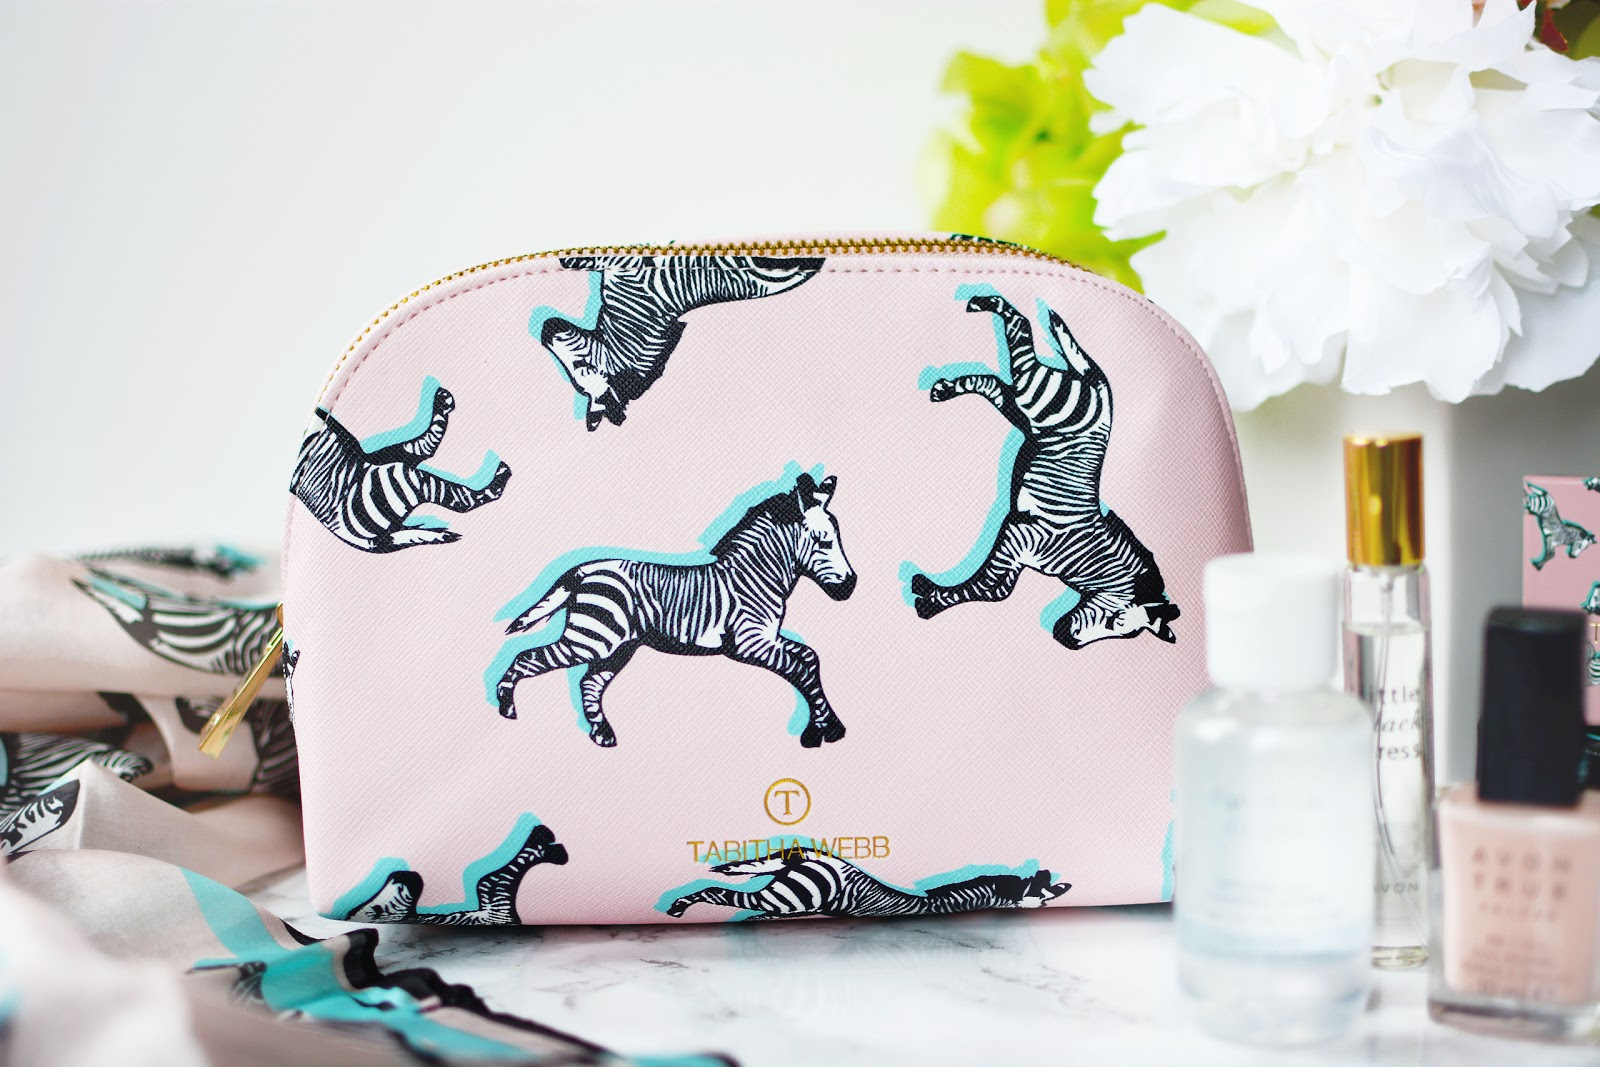 T by Tabitha Webb Zebra Print Cosmetics Bag